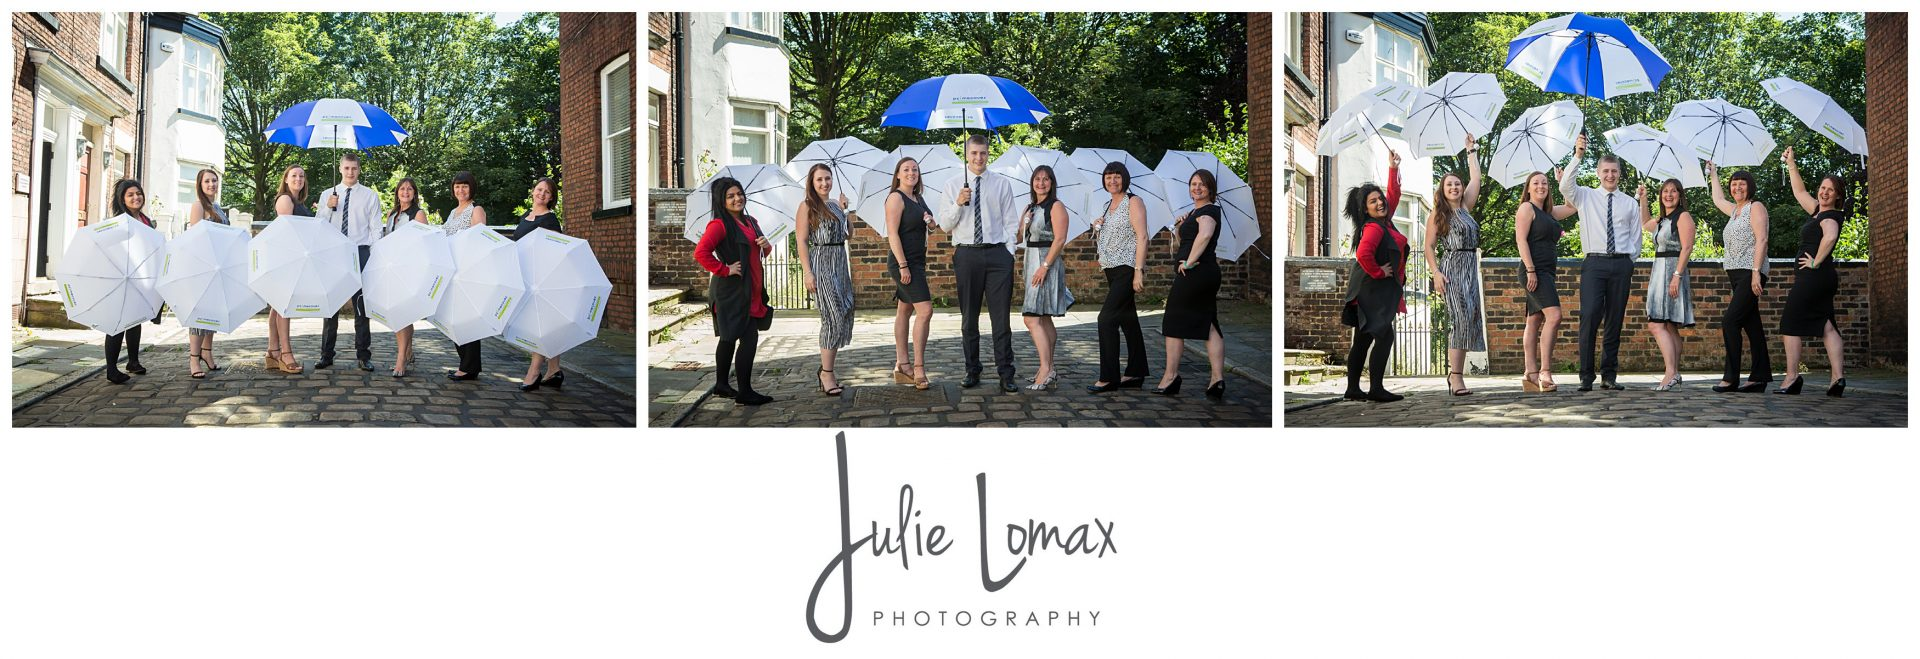 Portrait Photographer julie lomax 07879011603_0005